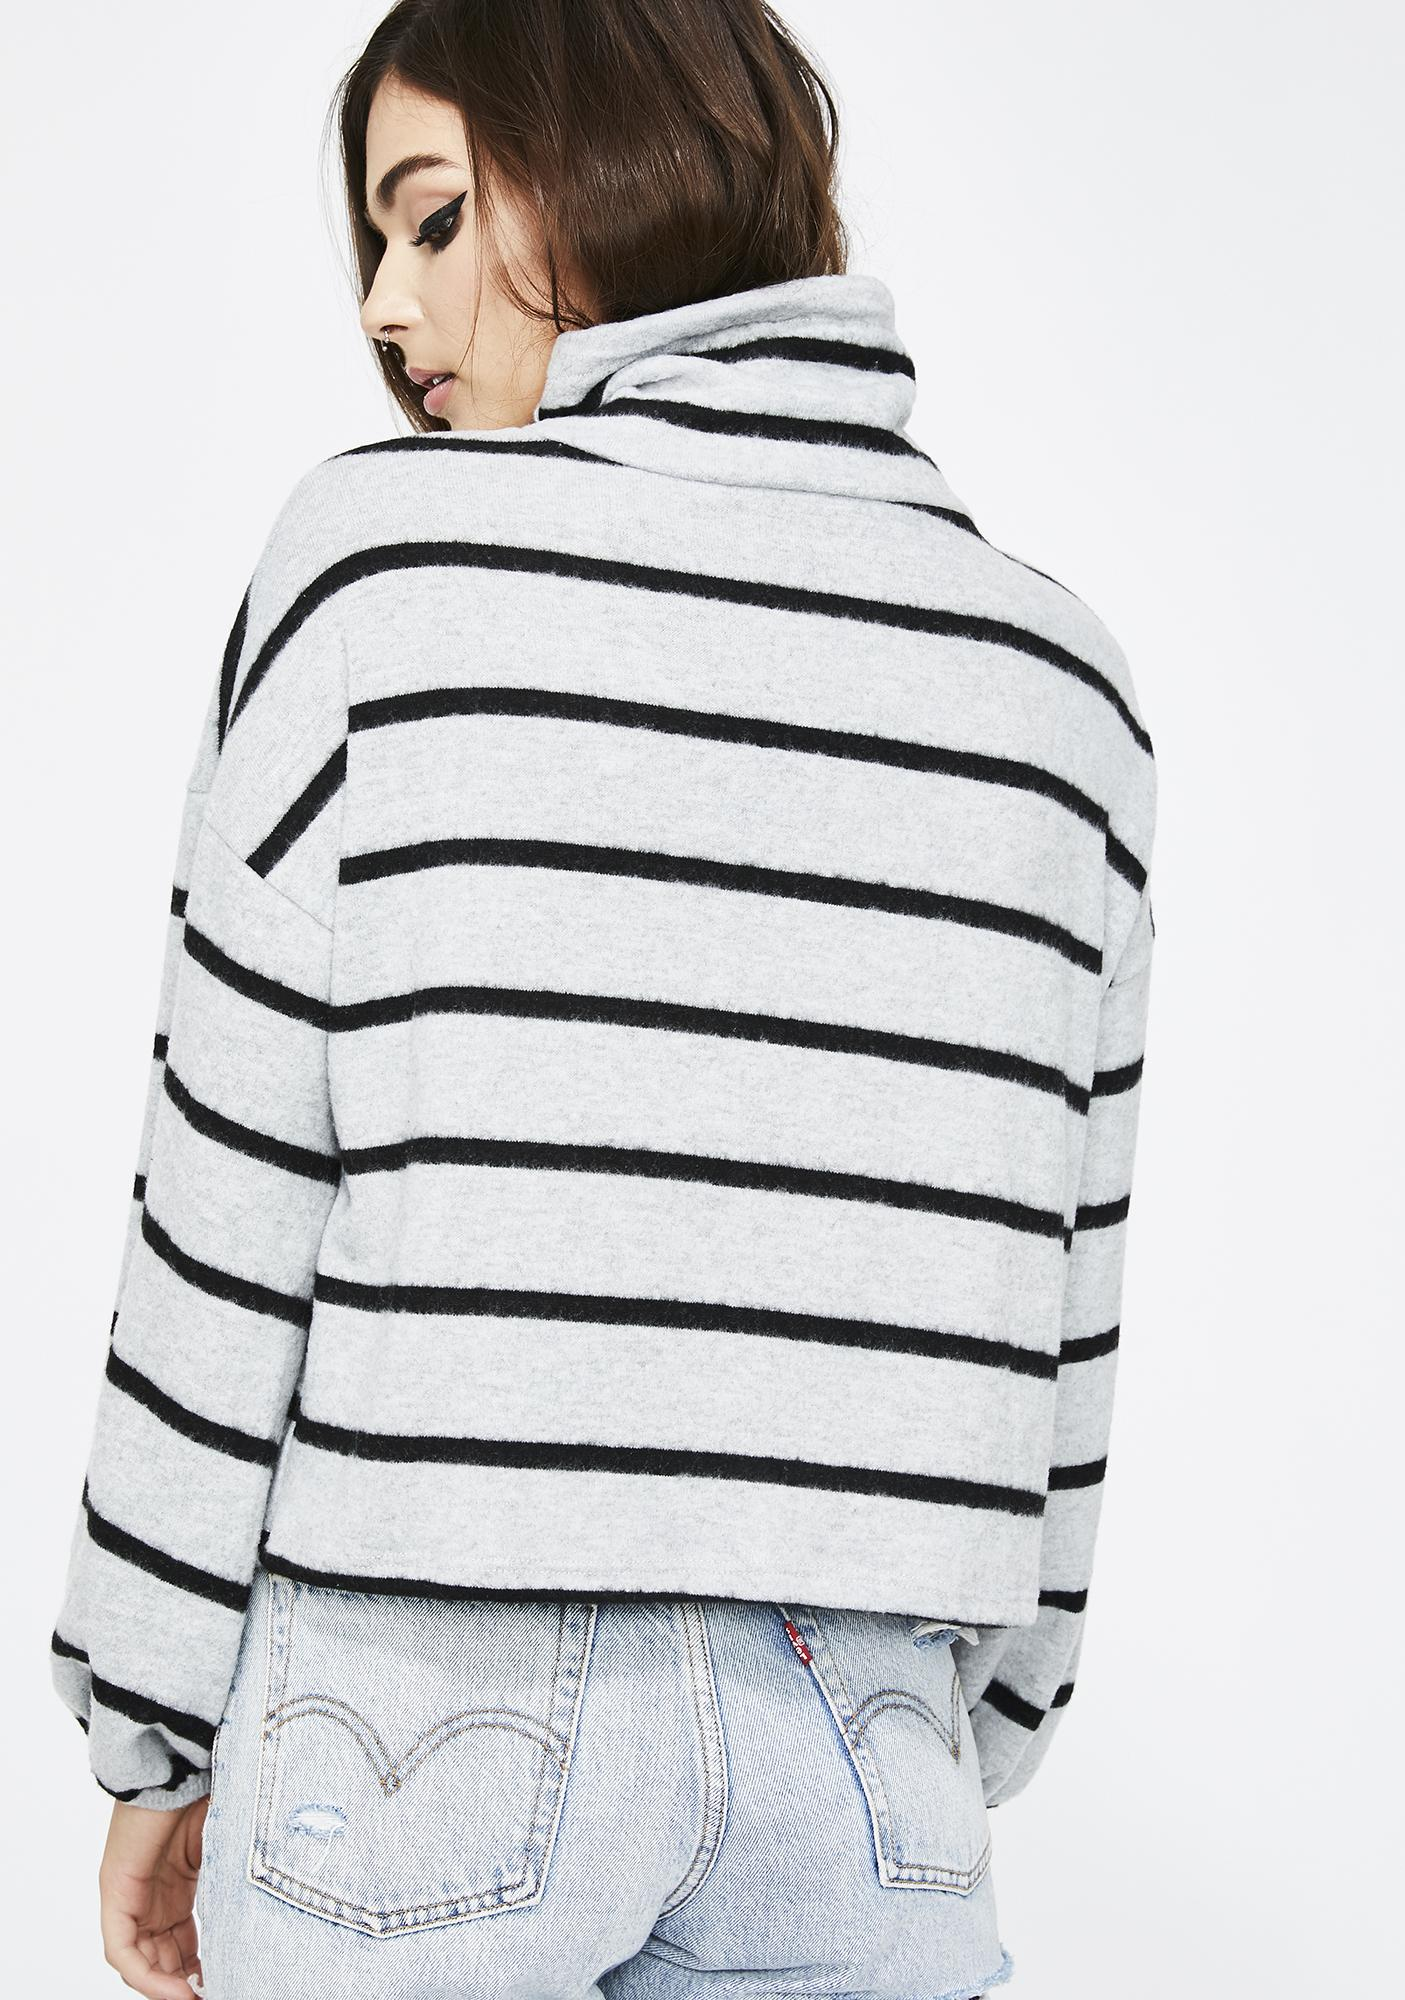 Stoned Too Chill Stripe Sweater